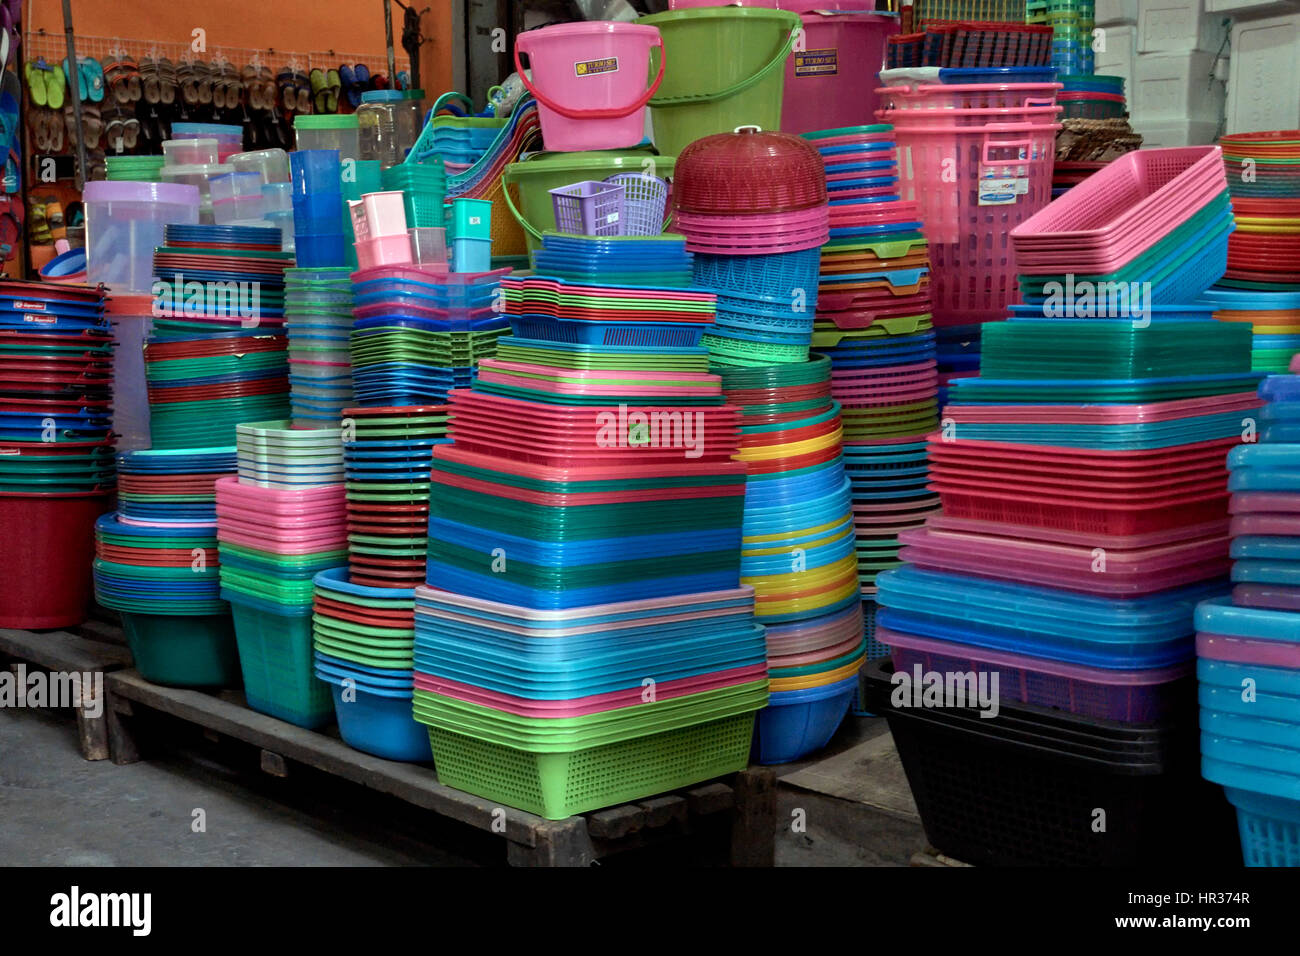 Colorful plastic household goods for sale at a Thailand hardware store. - Stock Image